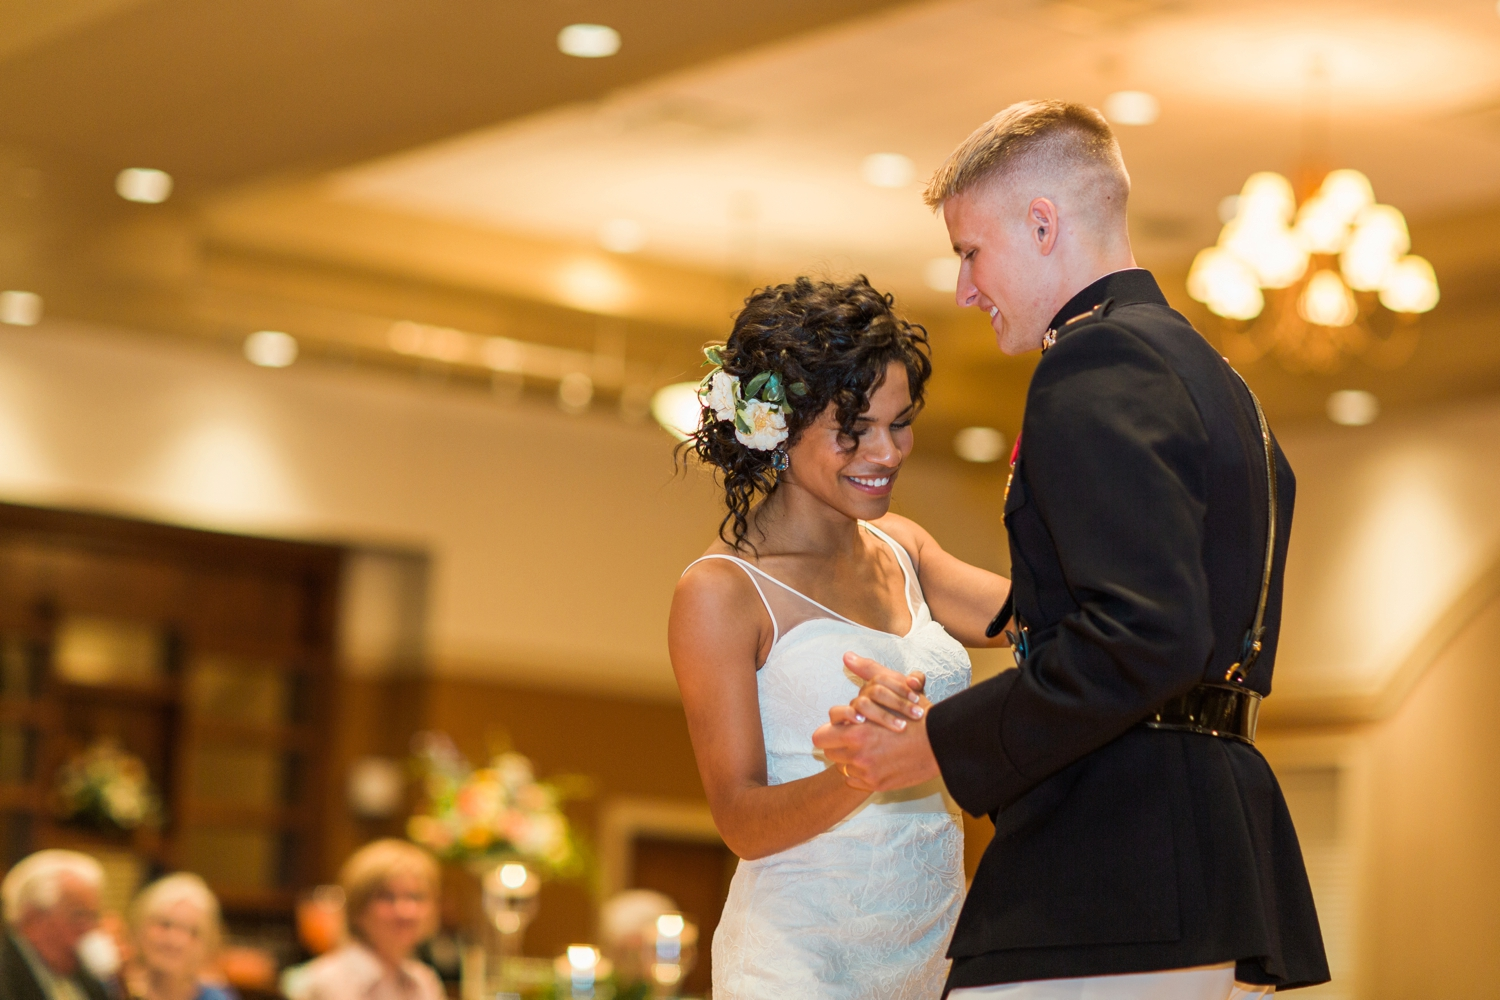 Wedding-at-The-Savannah-Center-West-Chester-Ohio-Photography-Chloe-Luka-Photography_7563.jpg